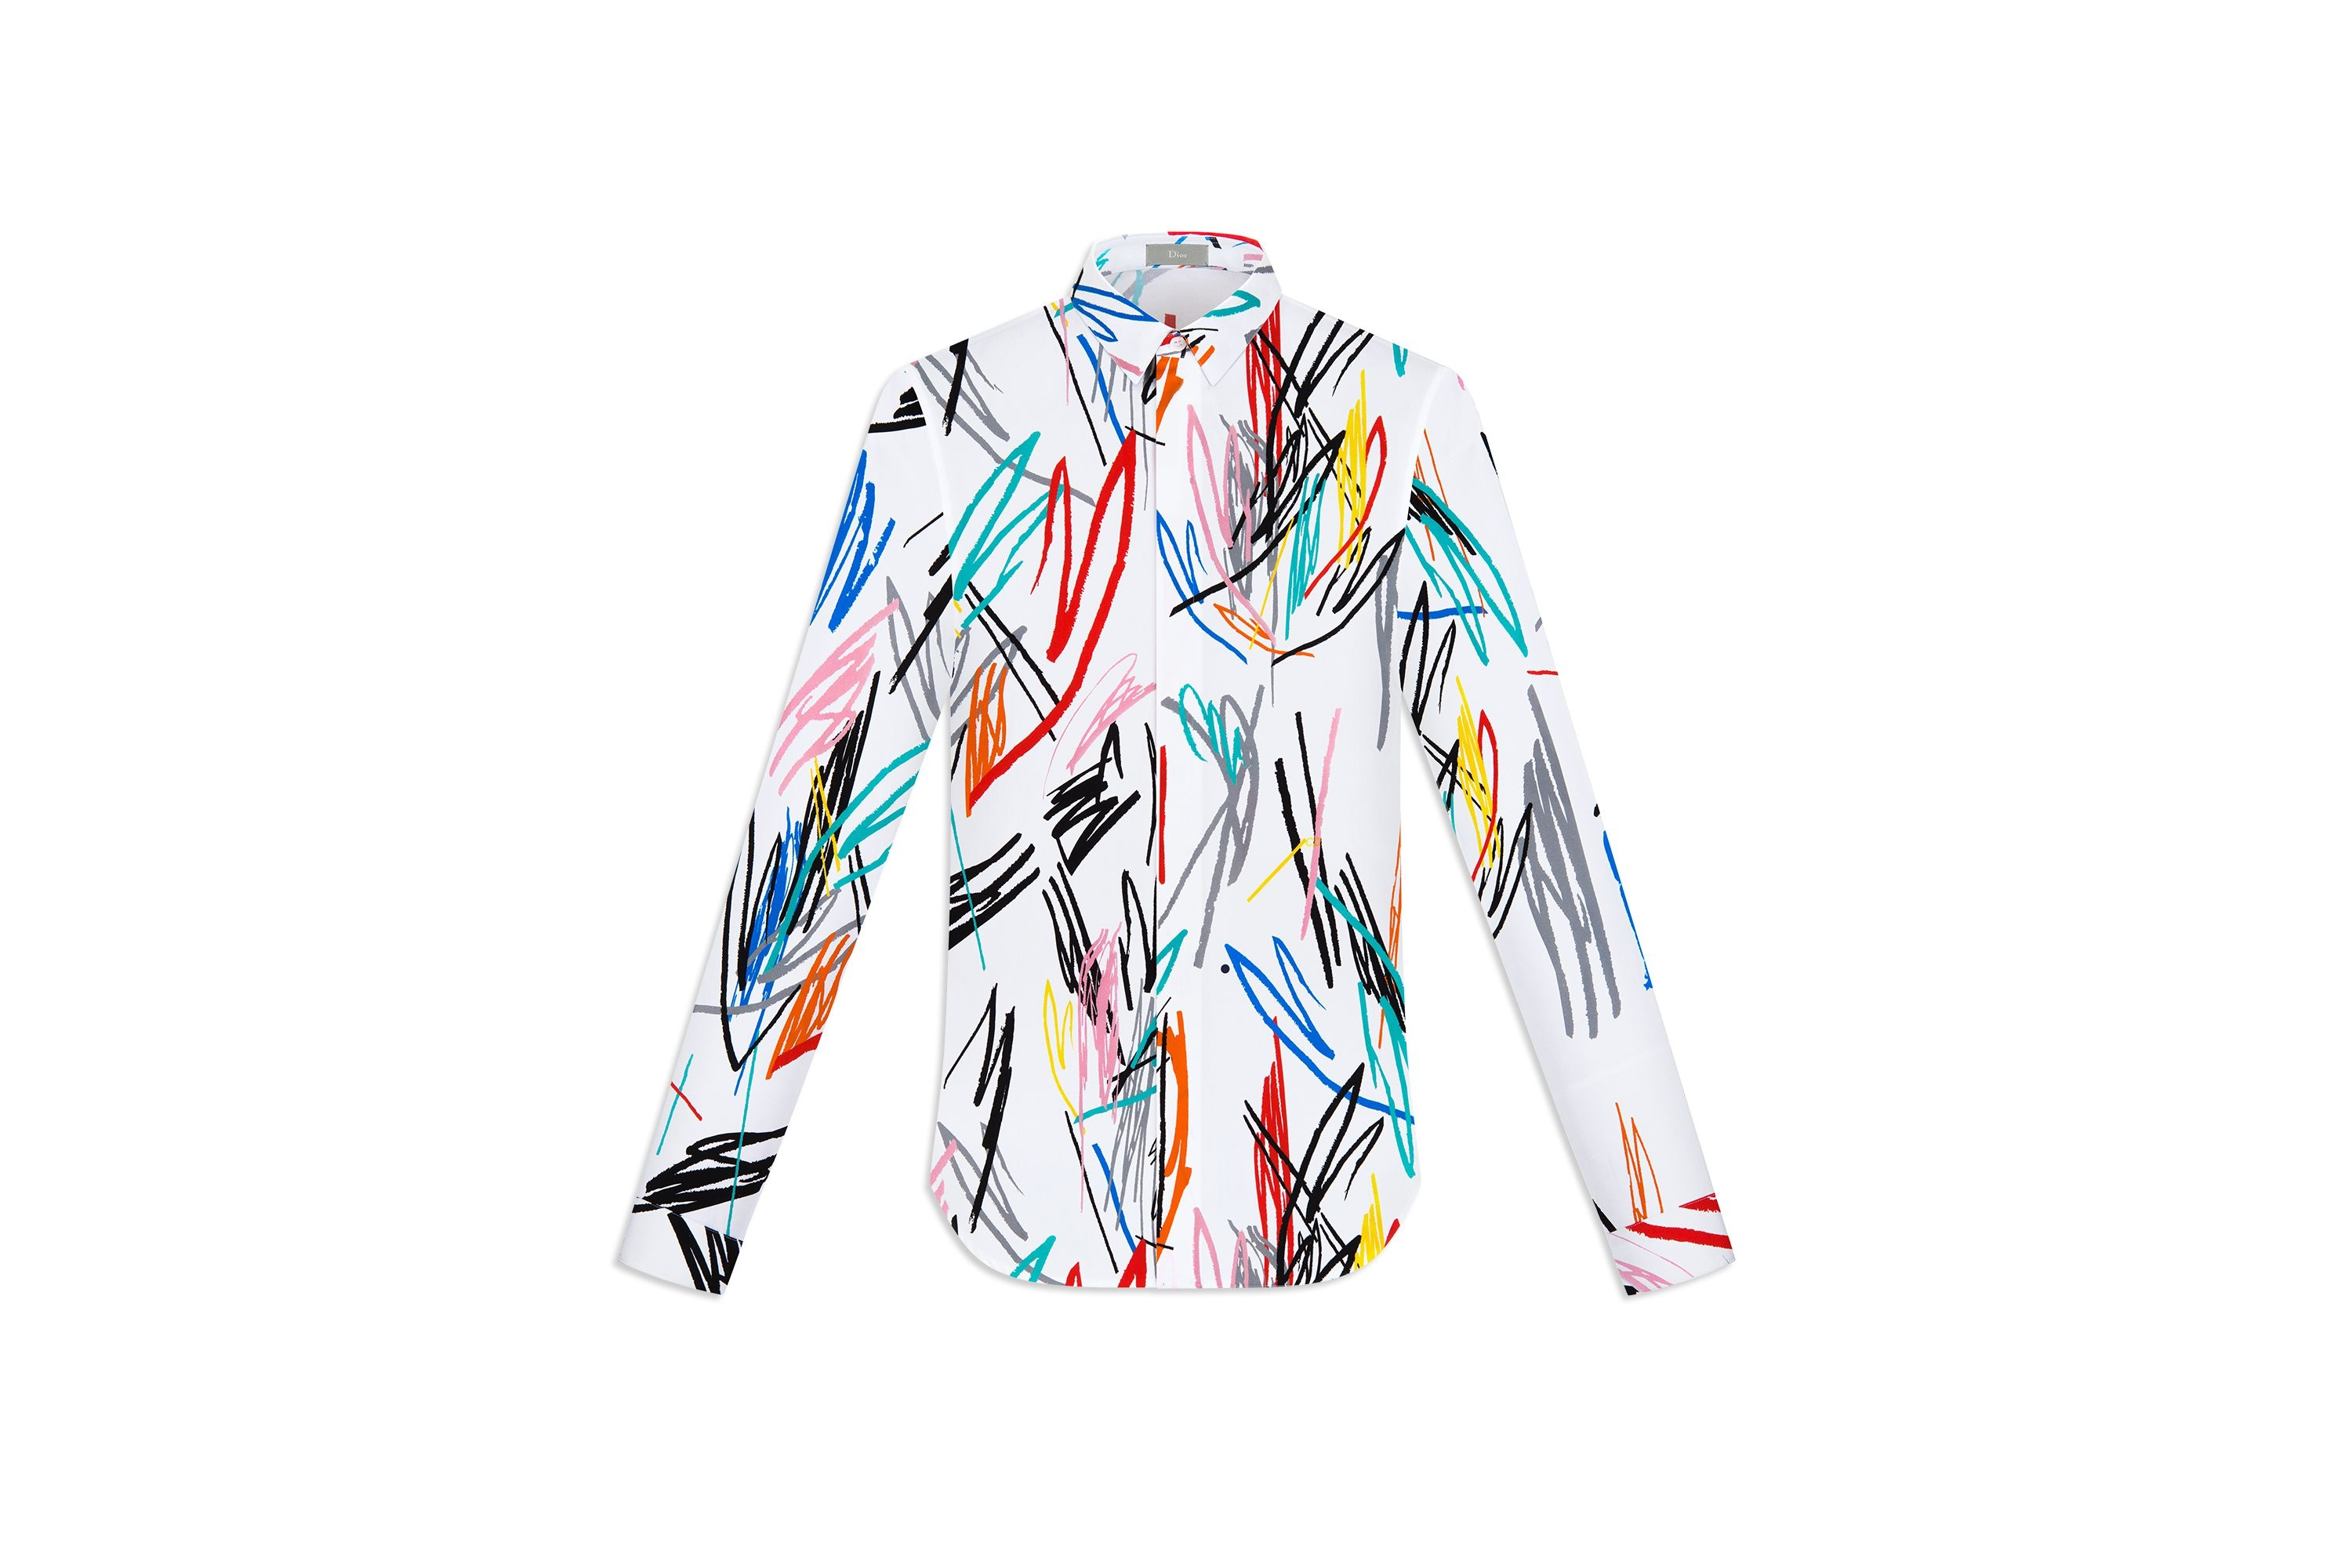 Dior-Homme-spring-2015-scribble-shirt-1